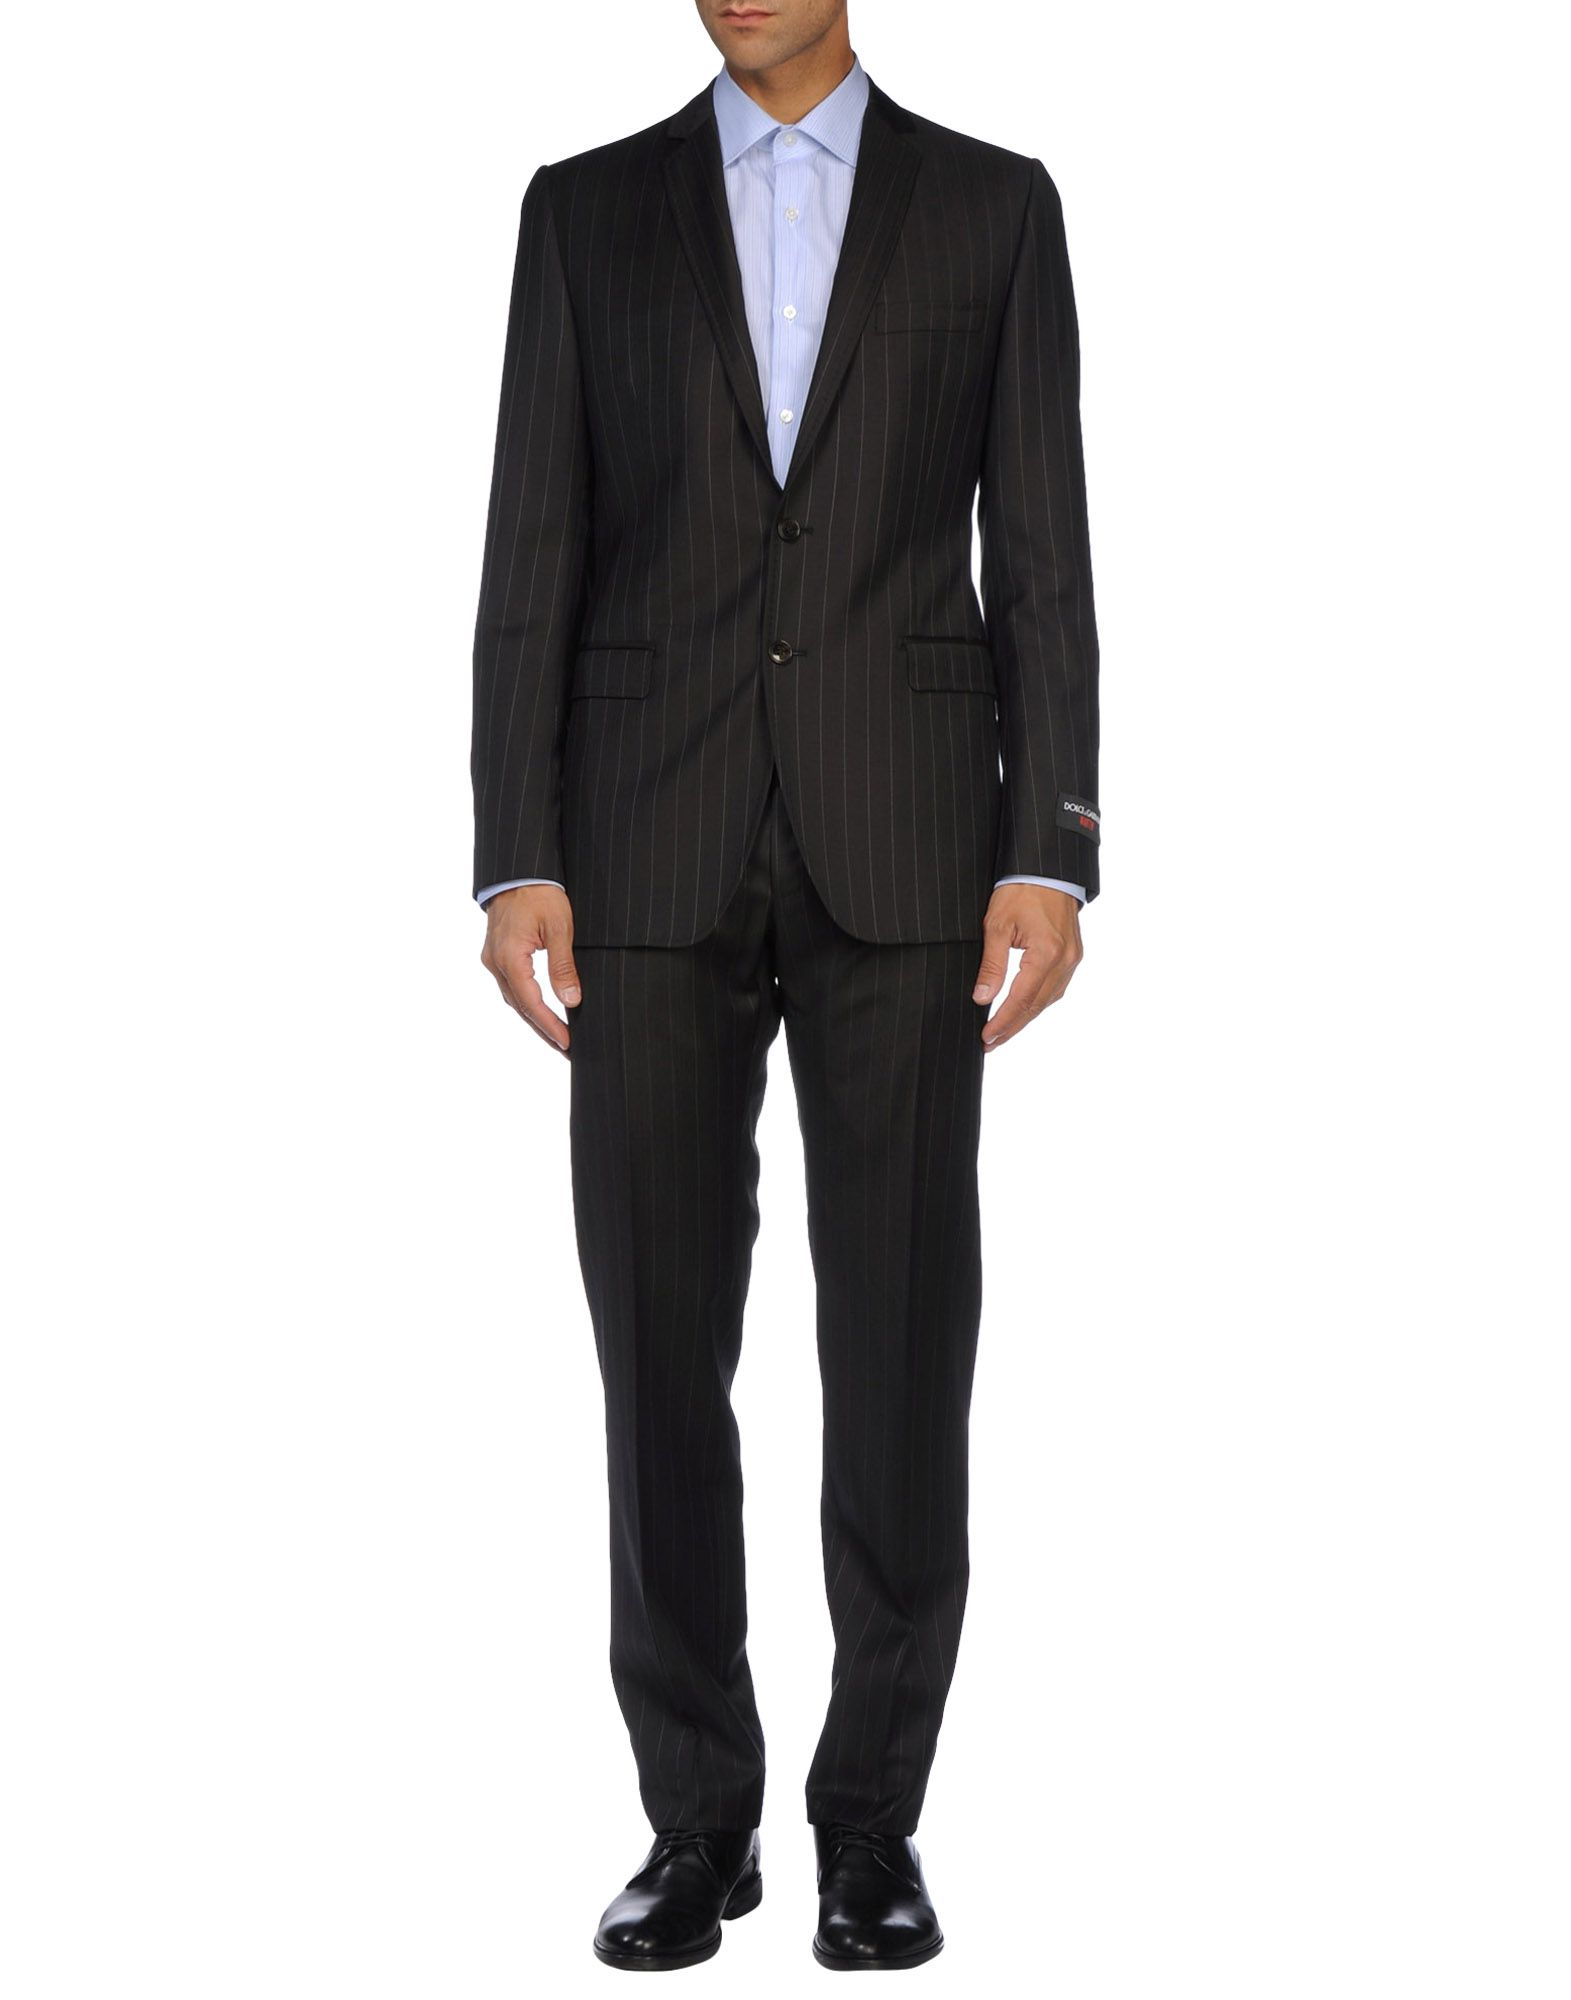 6c9e6f75c6 Dolce And Gabbana Suits Canada